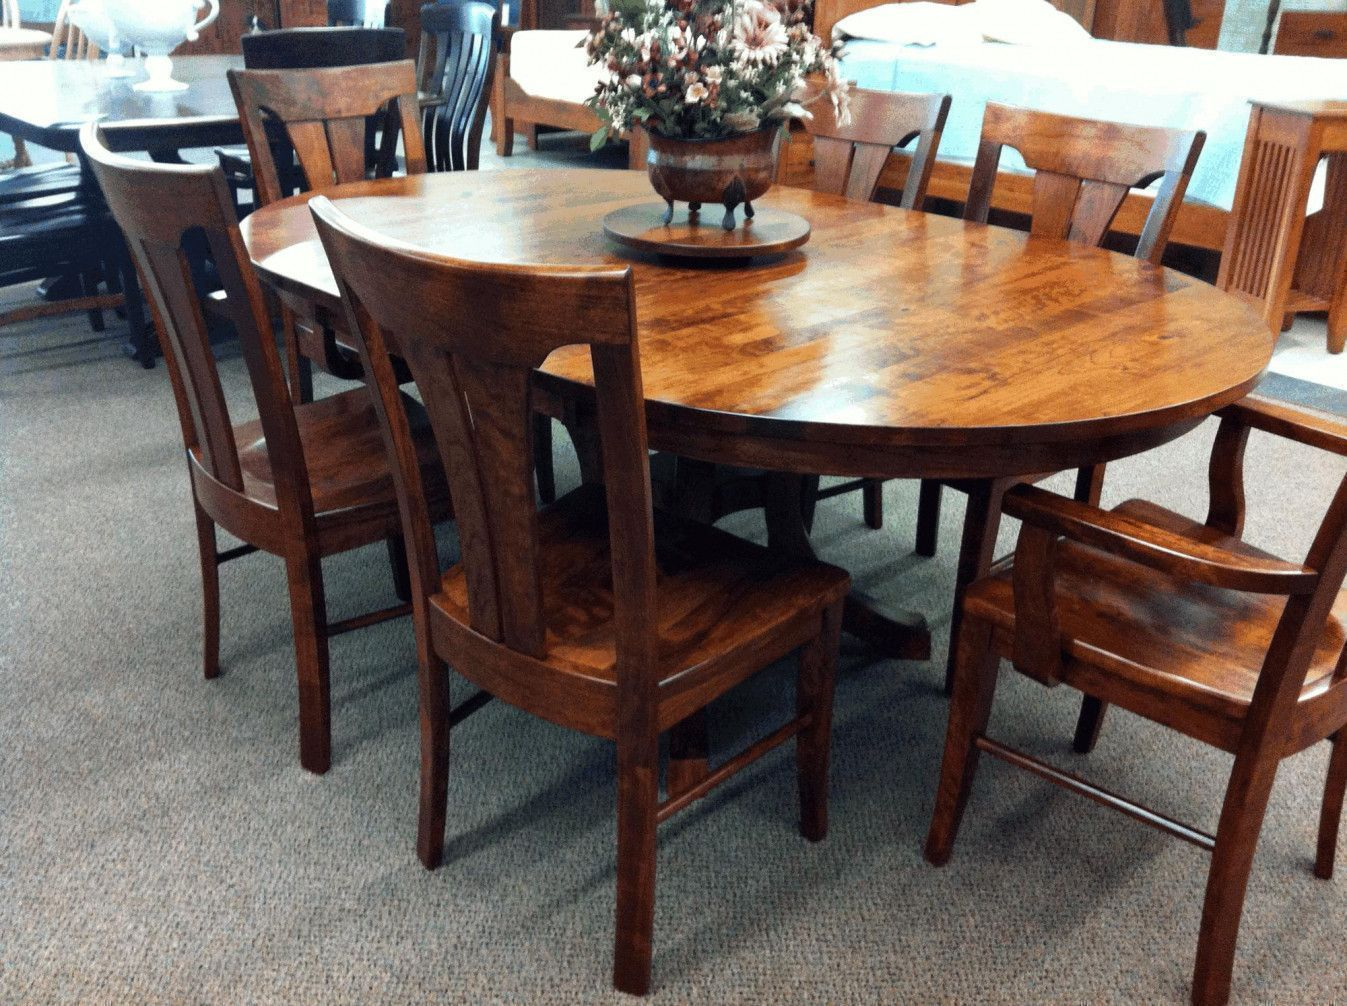 oriental dining room furniture. 2019 Oriental Dining Chairs - Vintage Modern Furniture Check More At Http://www Room